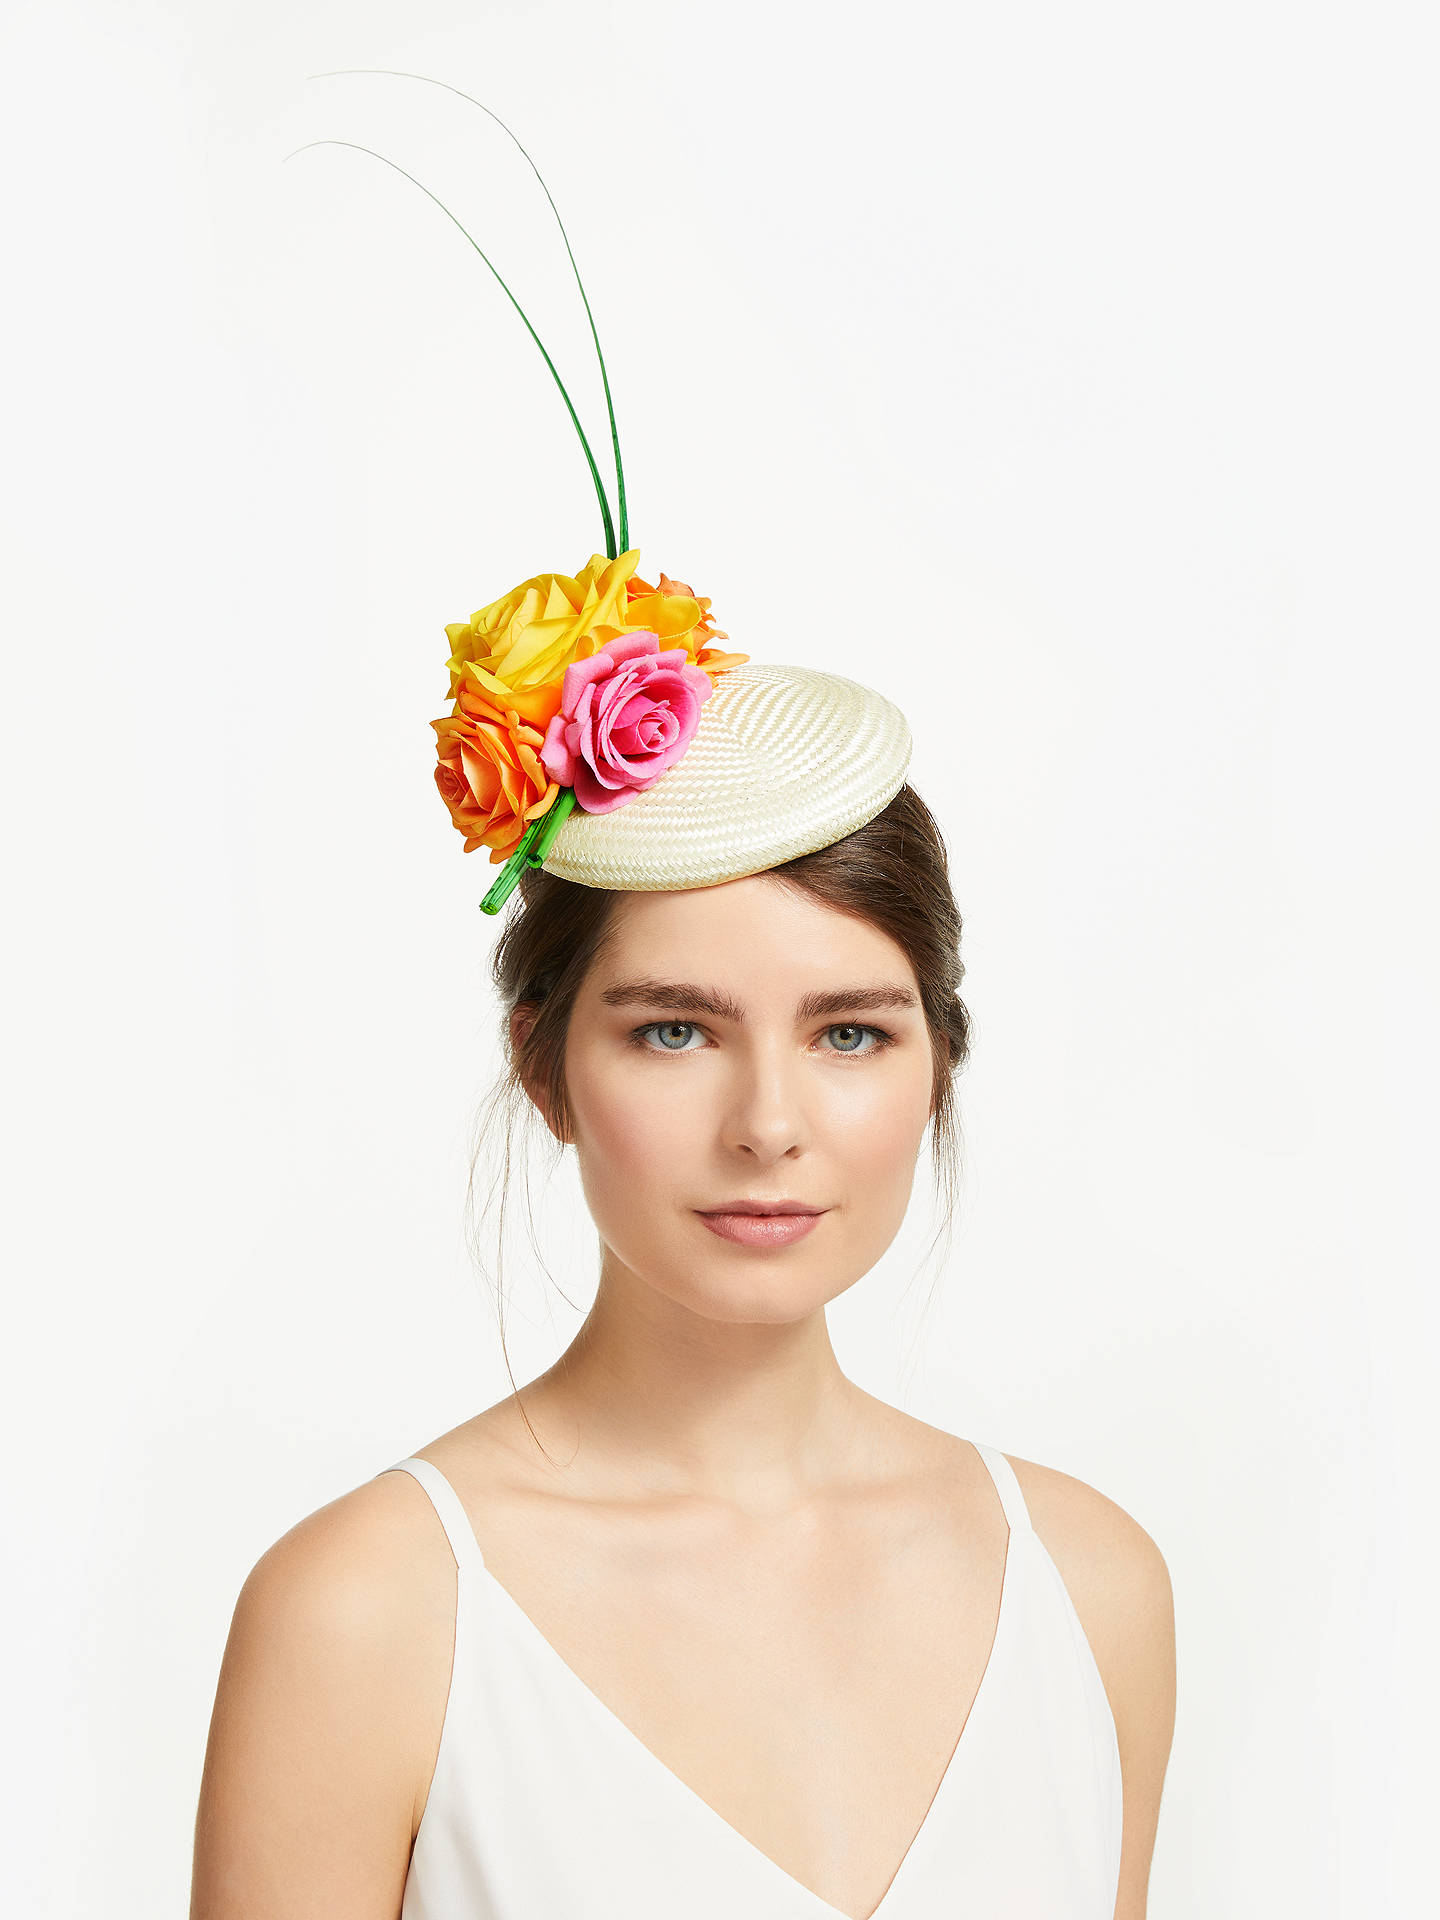 This is at the other end of the budget at £375, but perfect for Royal Ascot.